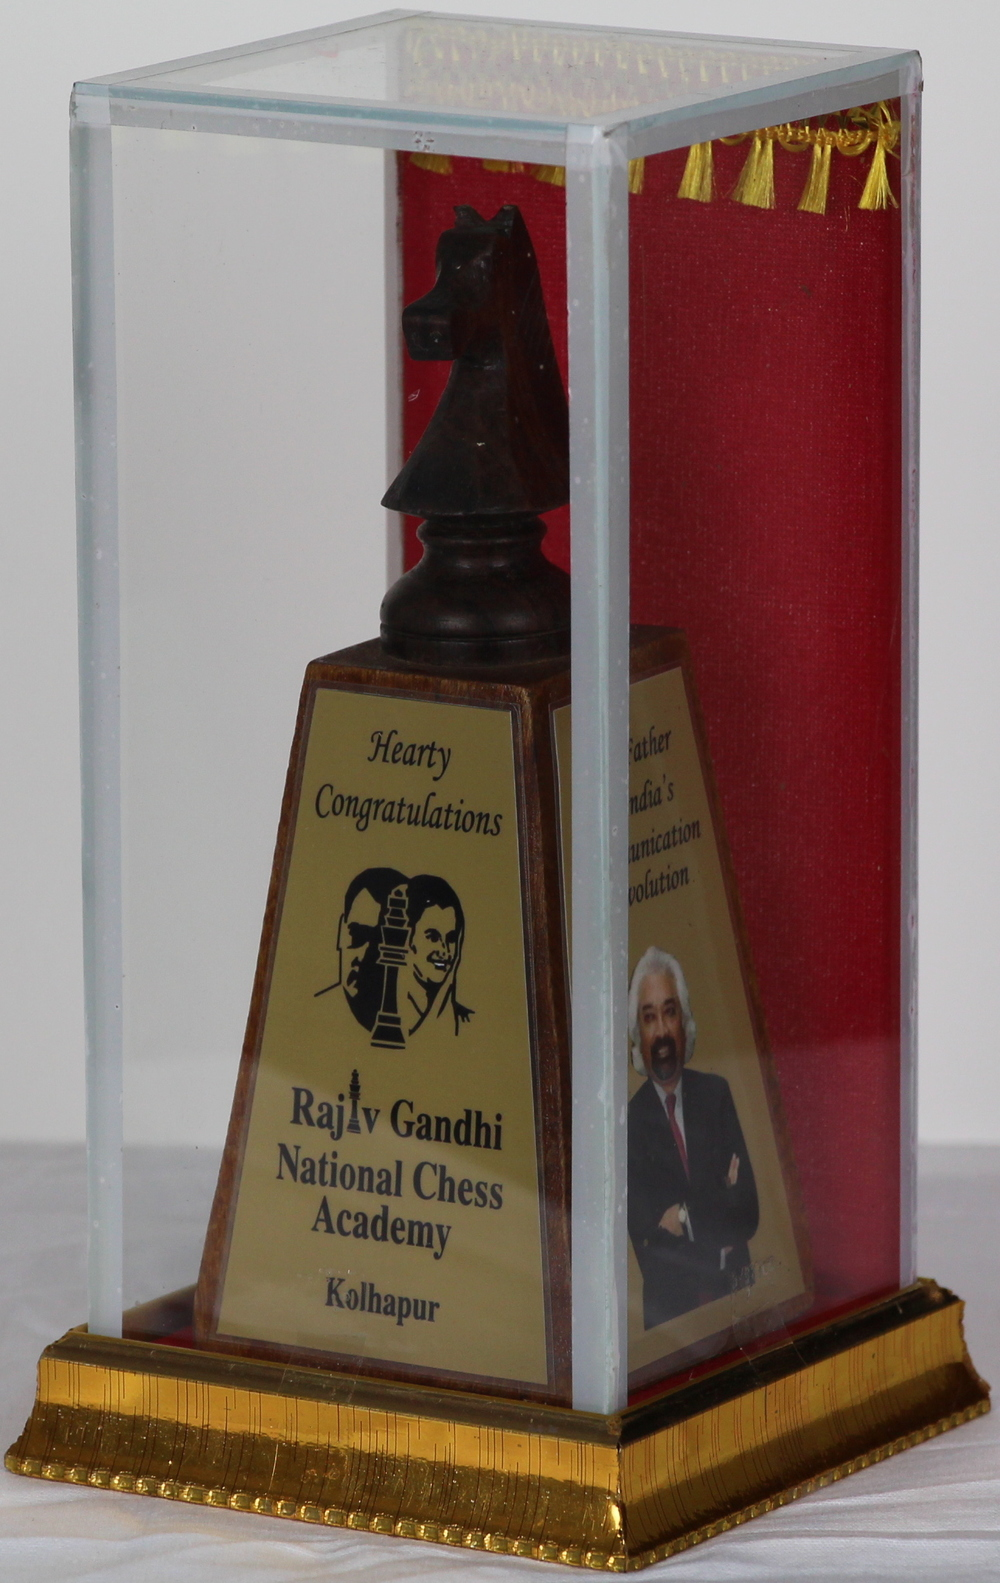 Award of Appreciation, Rajiv Gandhi National Chess Academy, Kanpur